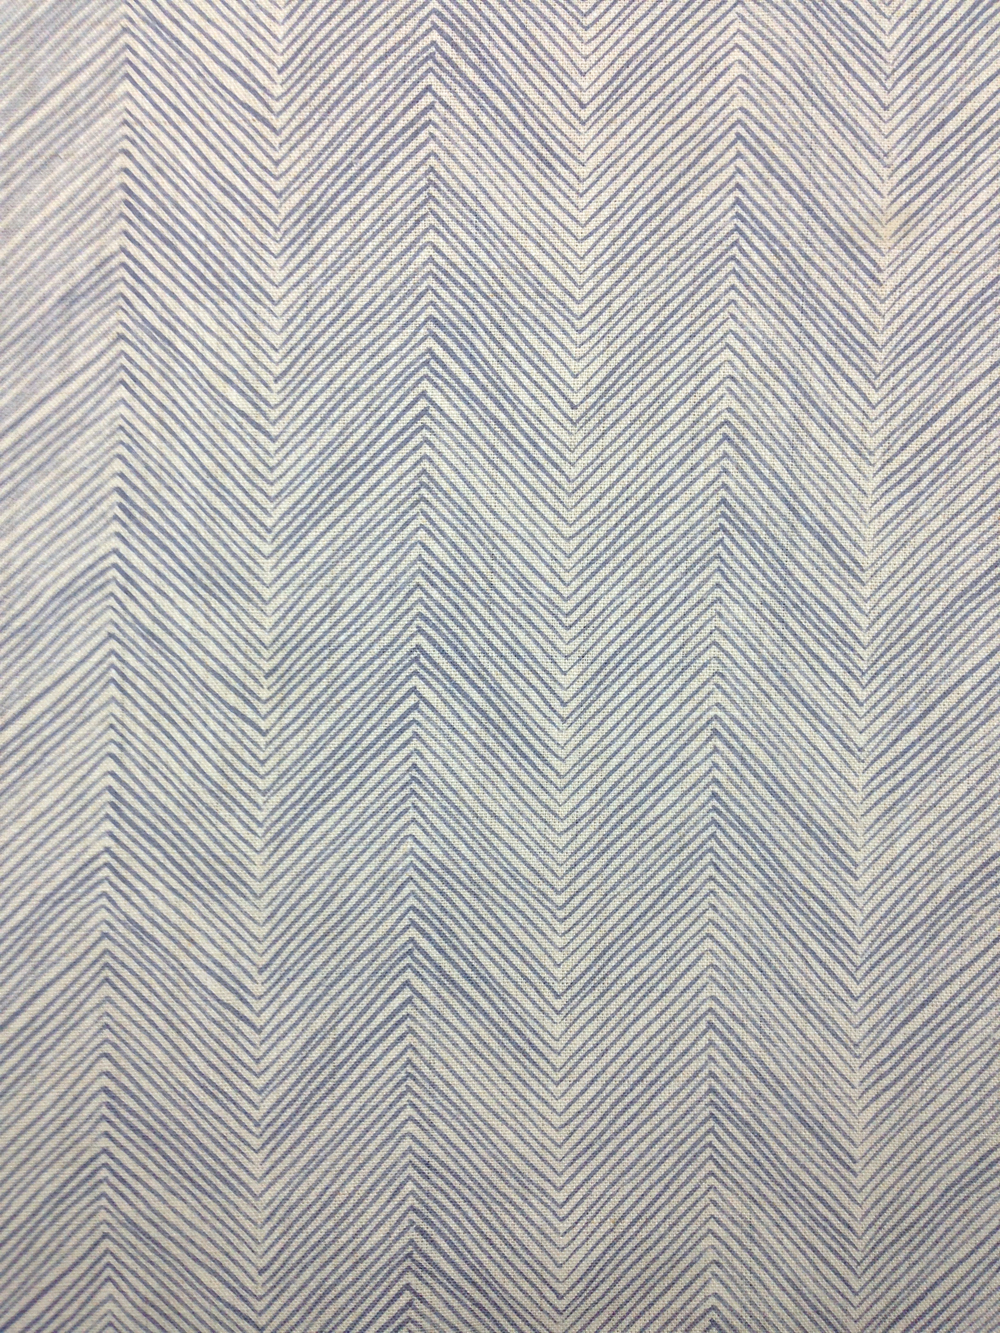 herringbone faded indigo